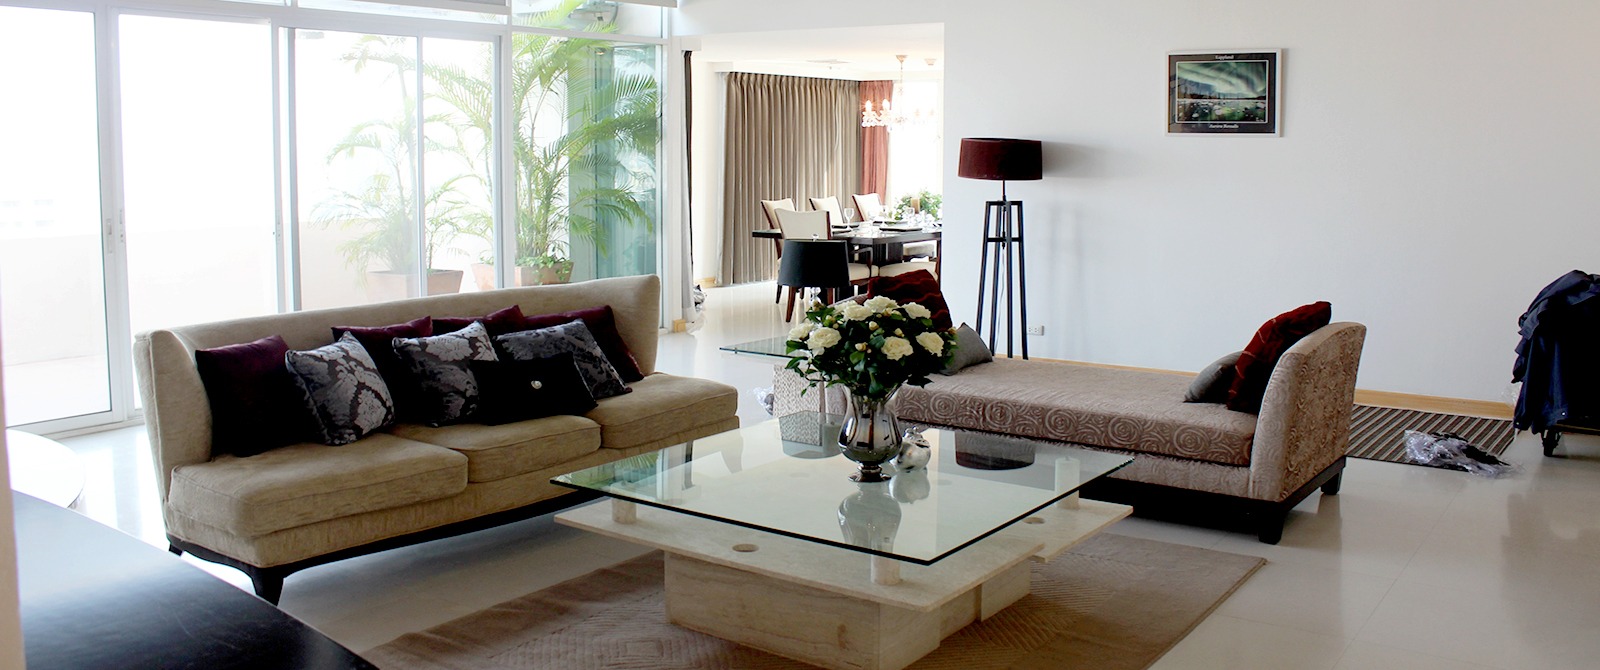 Duplex Penthouse. Homely Experience in the heart of Bangkok